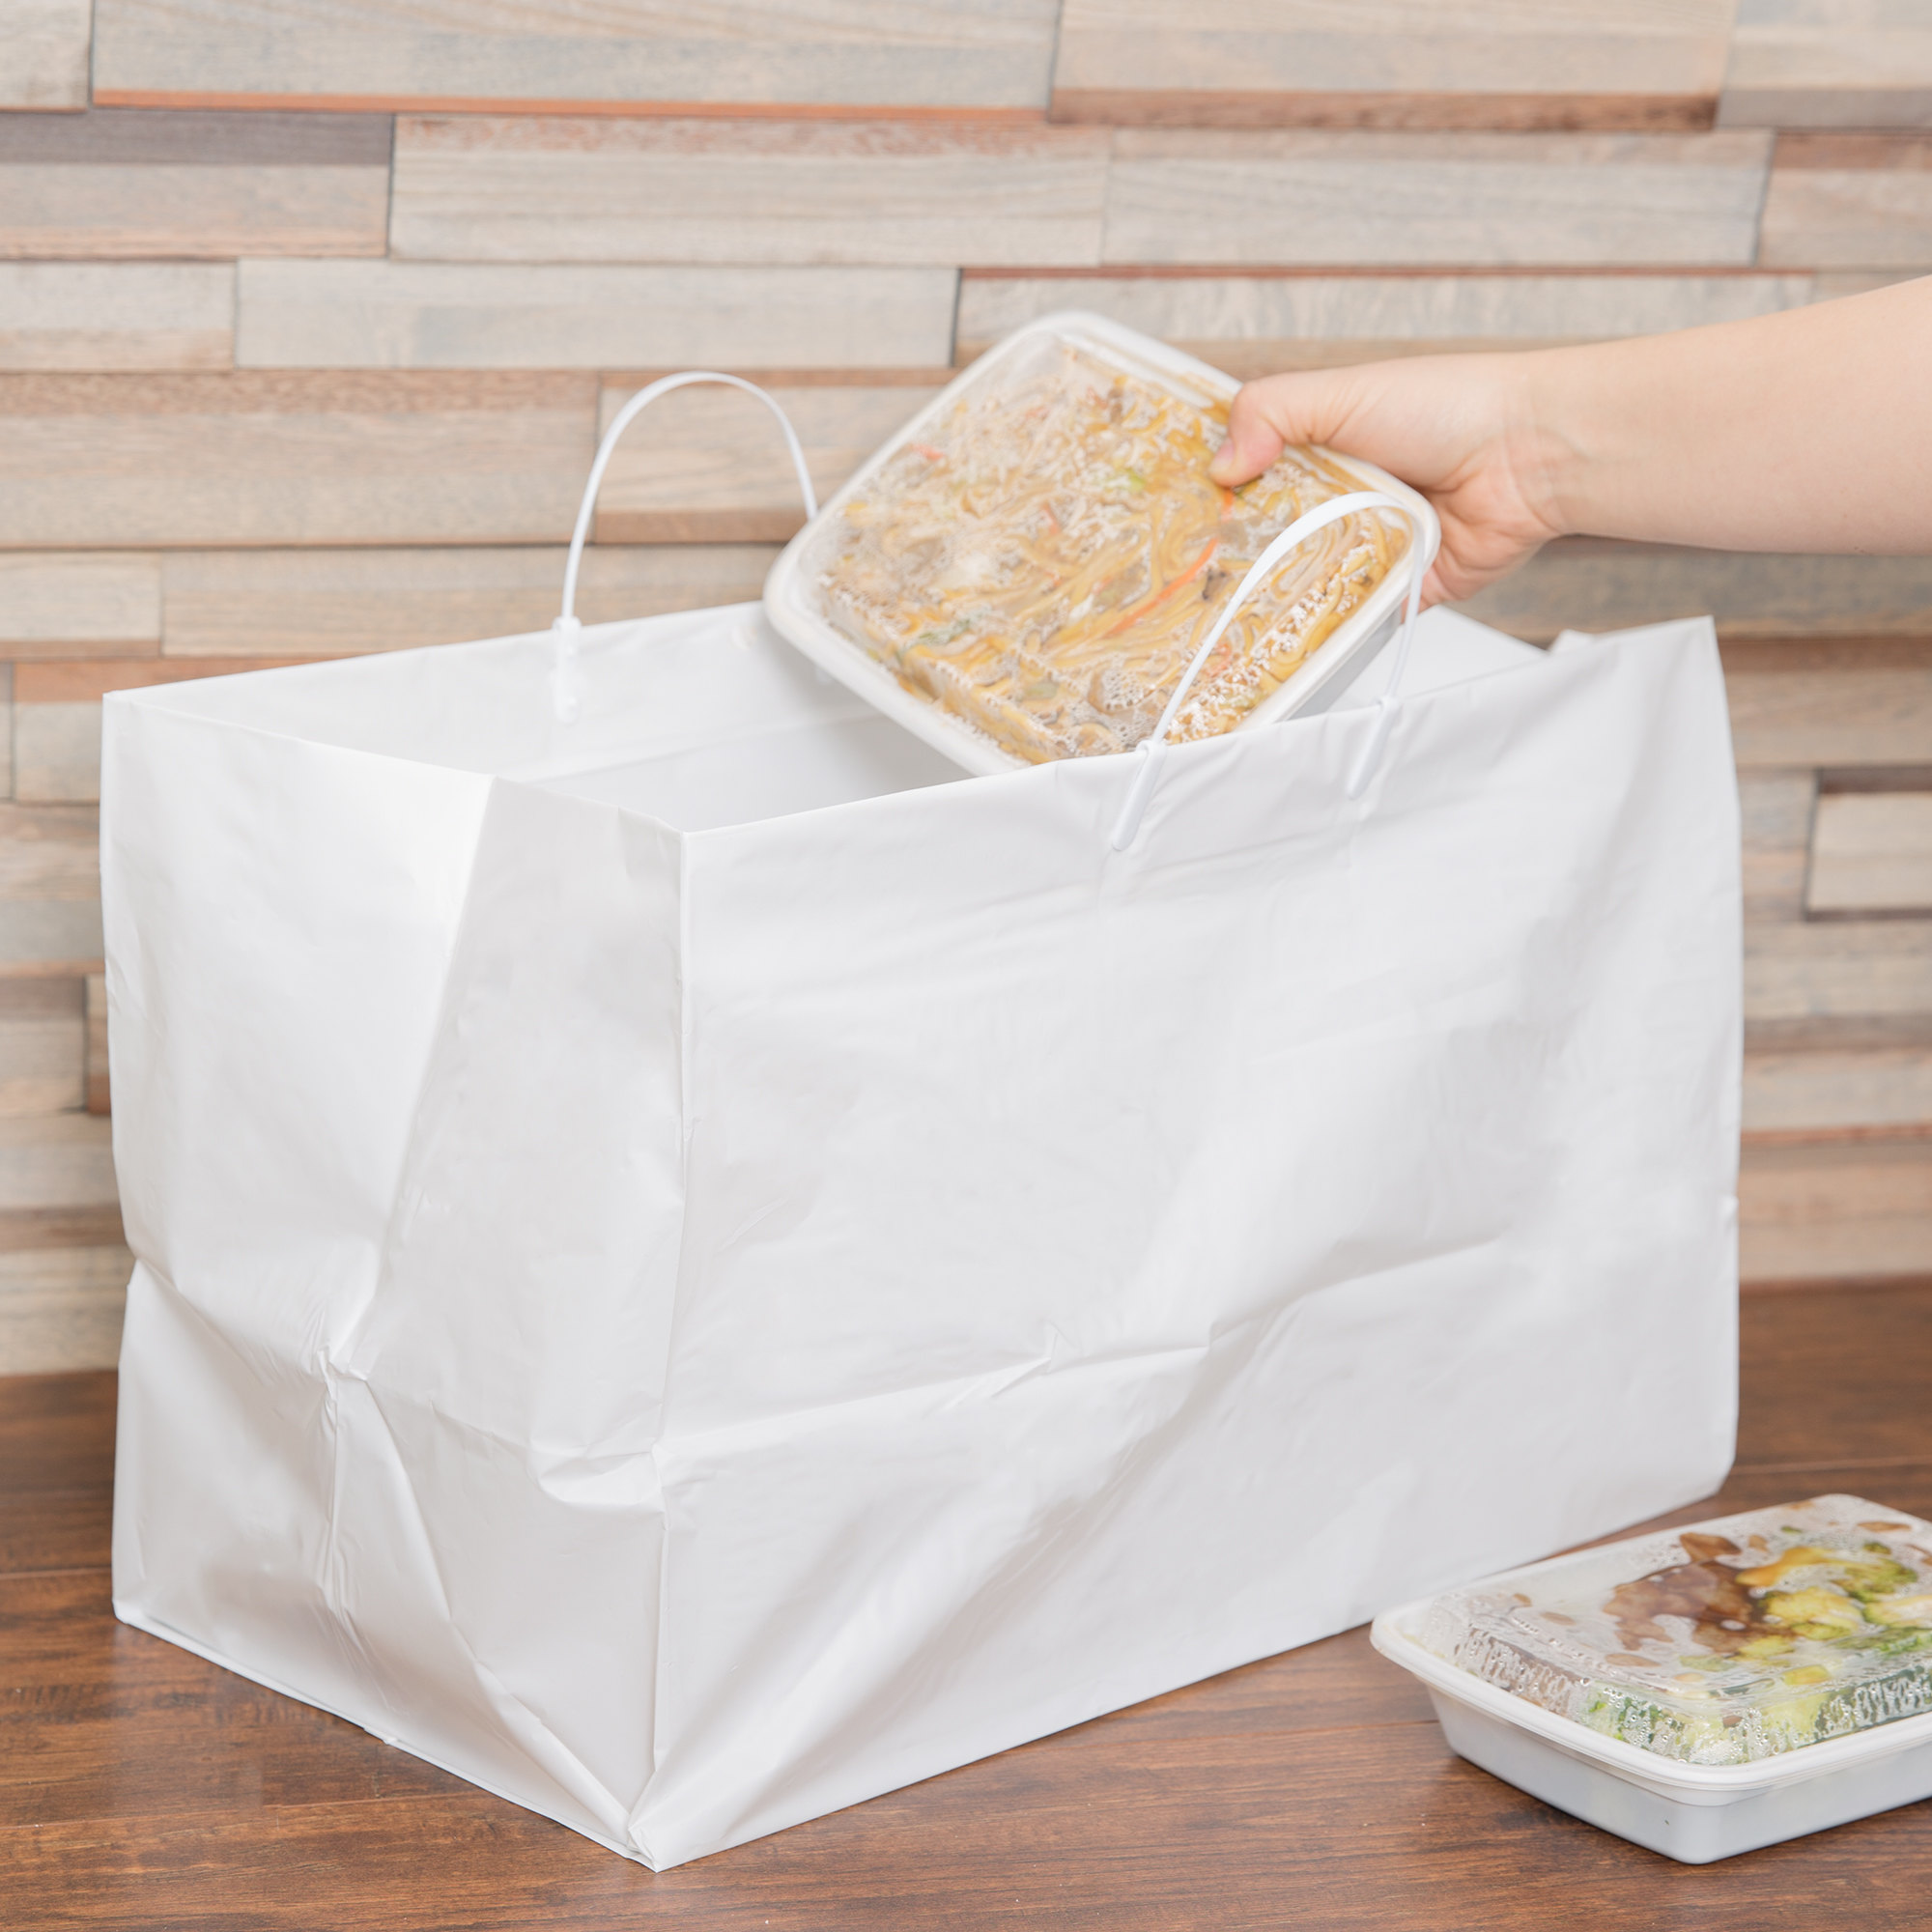 Сумка-пакет to-go, жесткий, белый пластик L-size White Rigid Plastic Handled Bag 48х31см\25см дно\ - 200 штук\кейс #008945